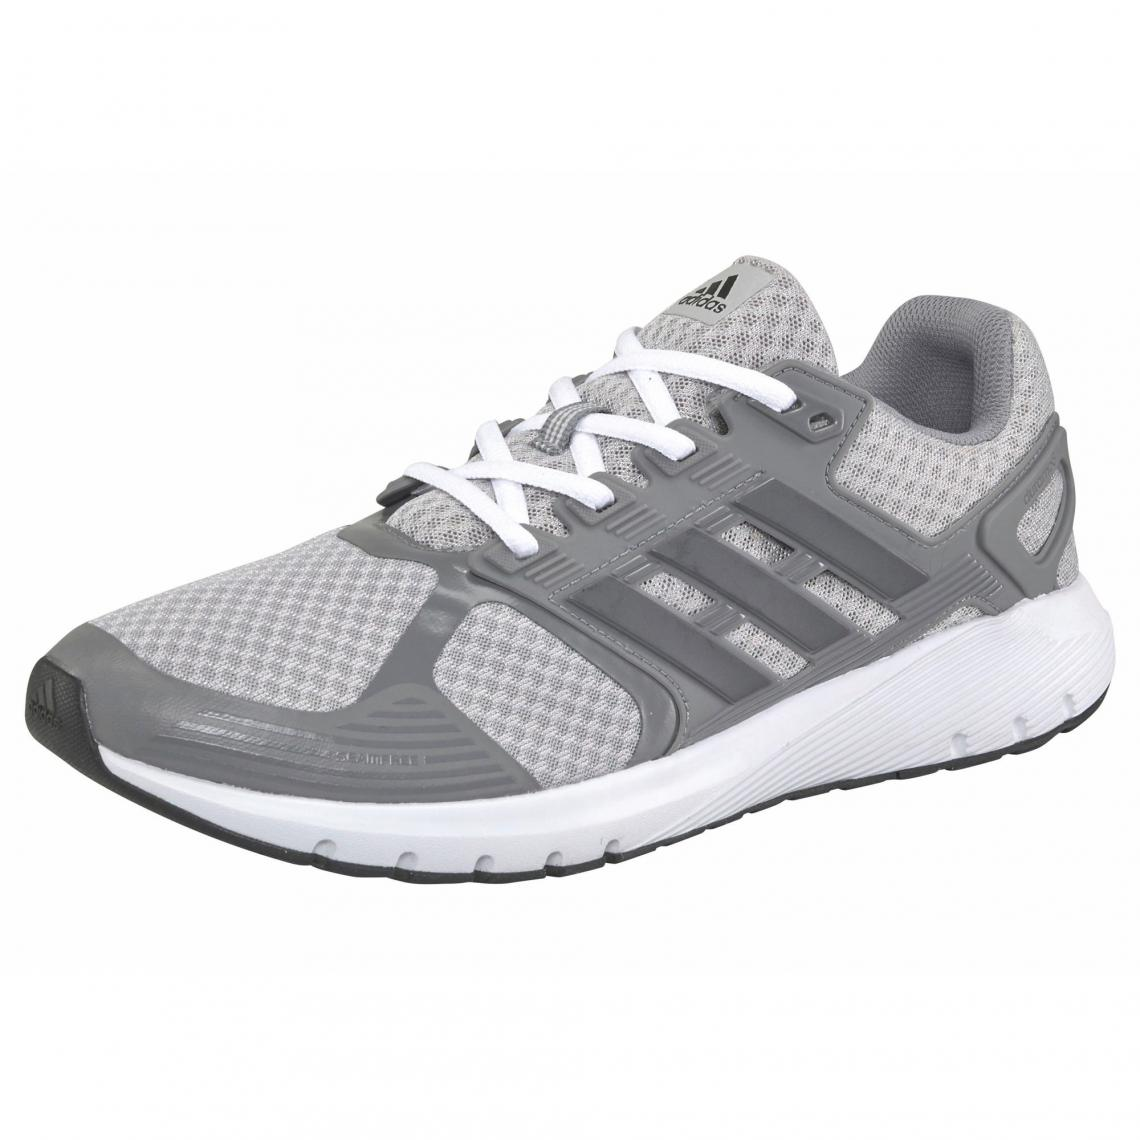 promo code 8f19e c9f8f adidas Performance Duramo 8 chaussures de running homme - Gris Adidas  Performance Homme